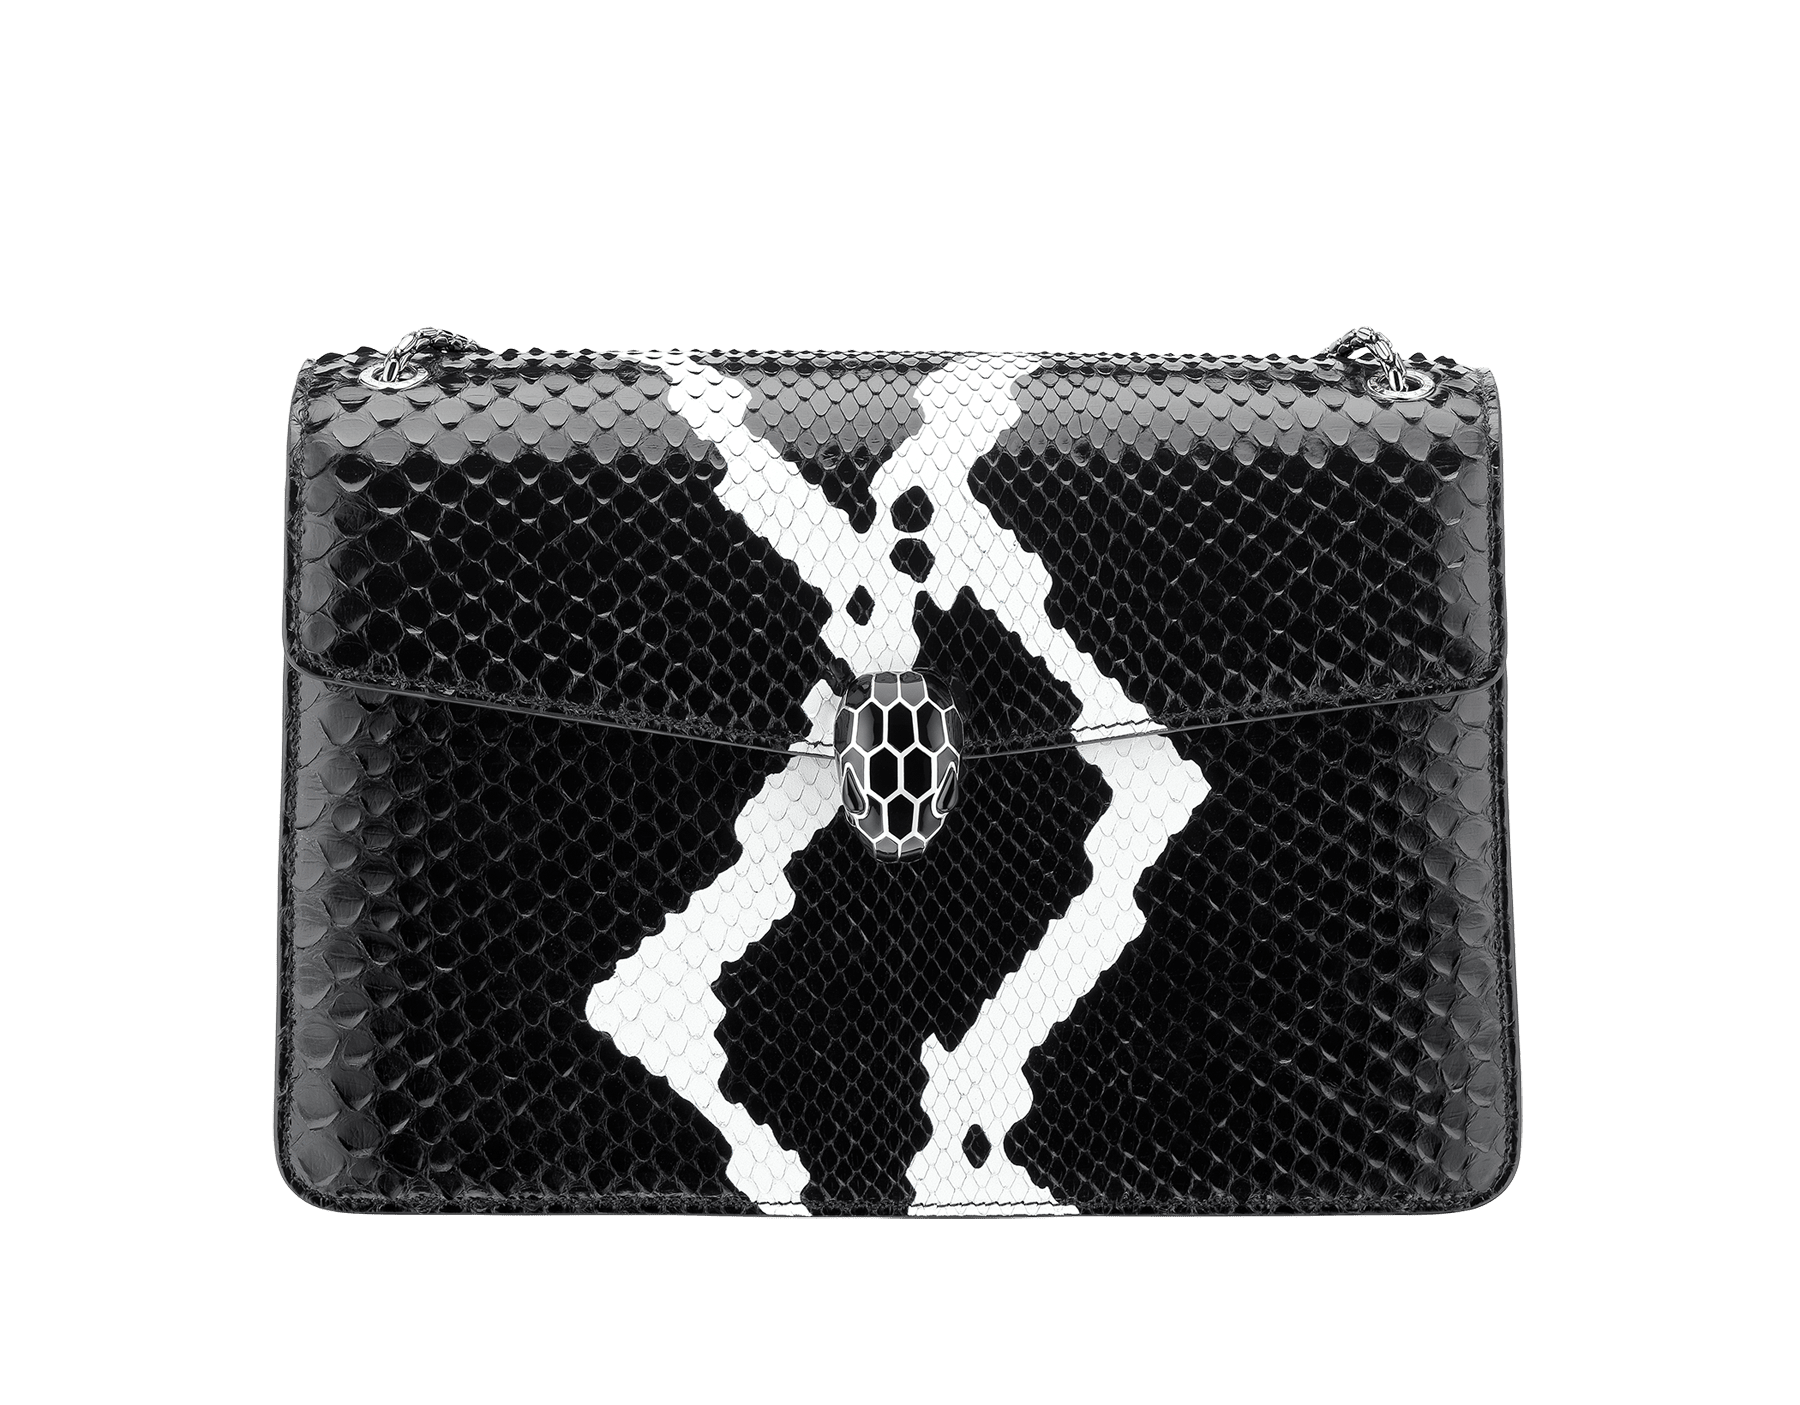 Serpenti Forever shoulder bag in black and white python skin with Whitethunder motif. Snakehead closure in shiny palladium plated brass decorated with black enamel, and black onyx eyes. 521-Pb image 1